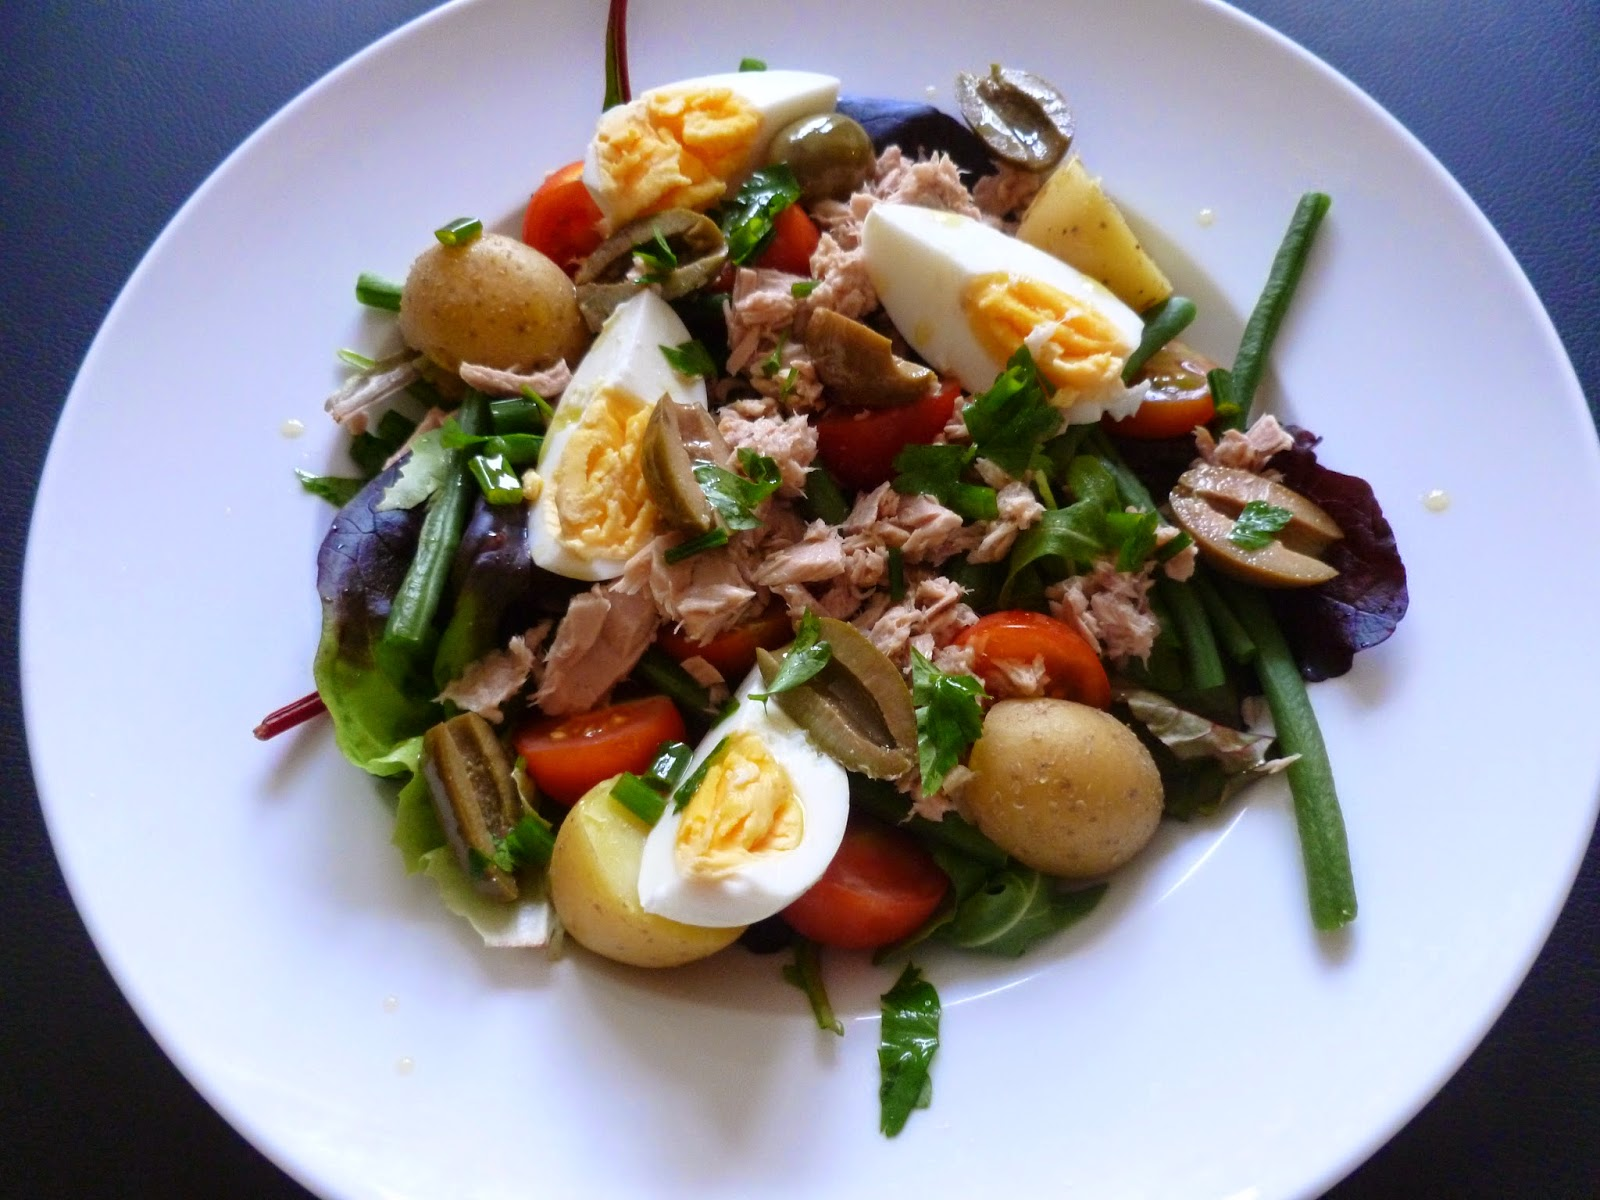 Bowl of salad nicoise